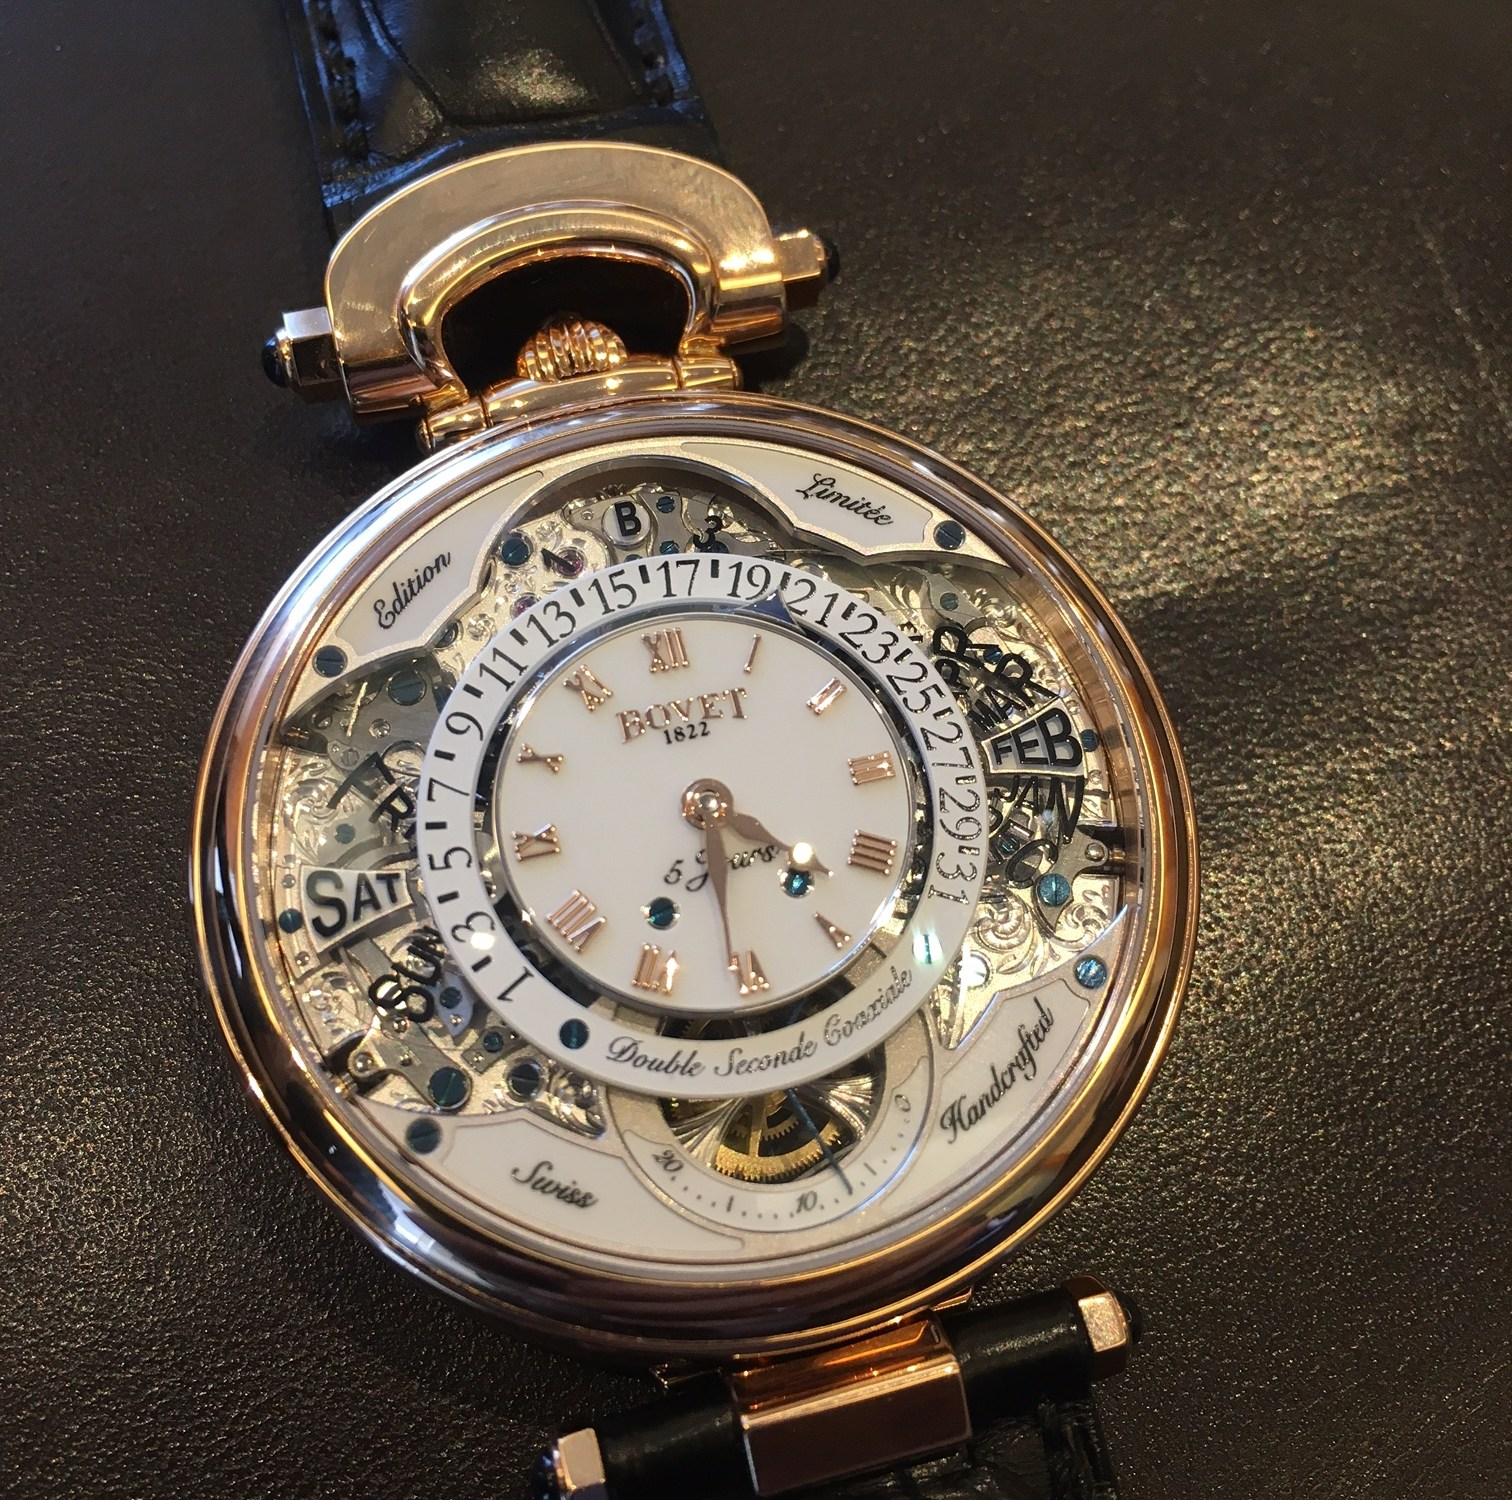 bovet watches phillips lady fleurier amadeo